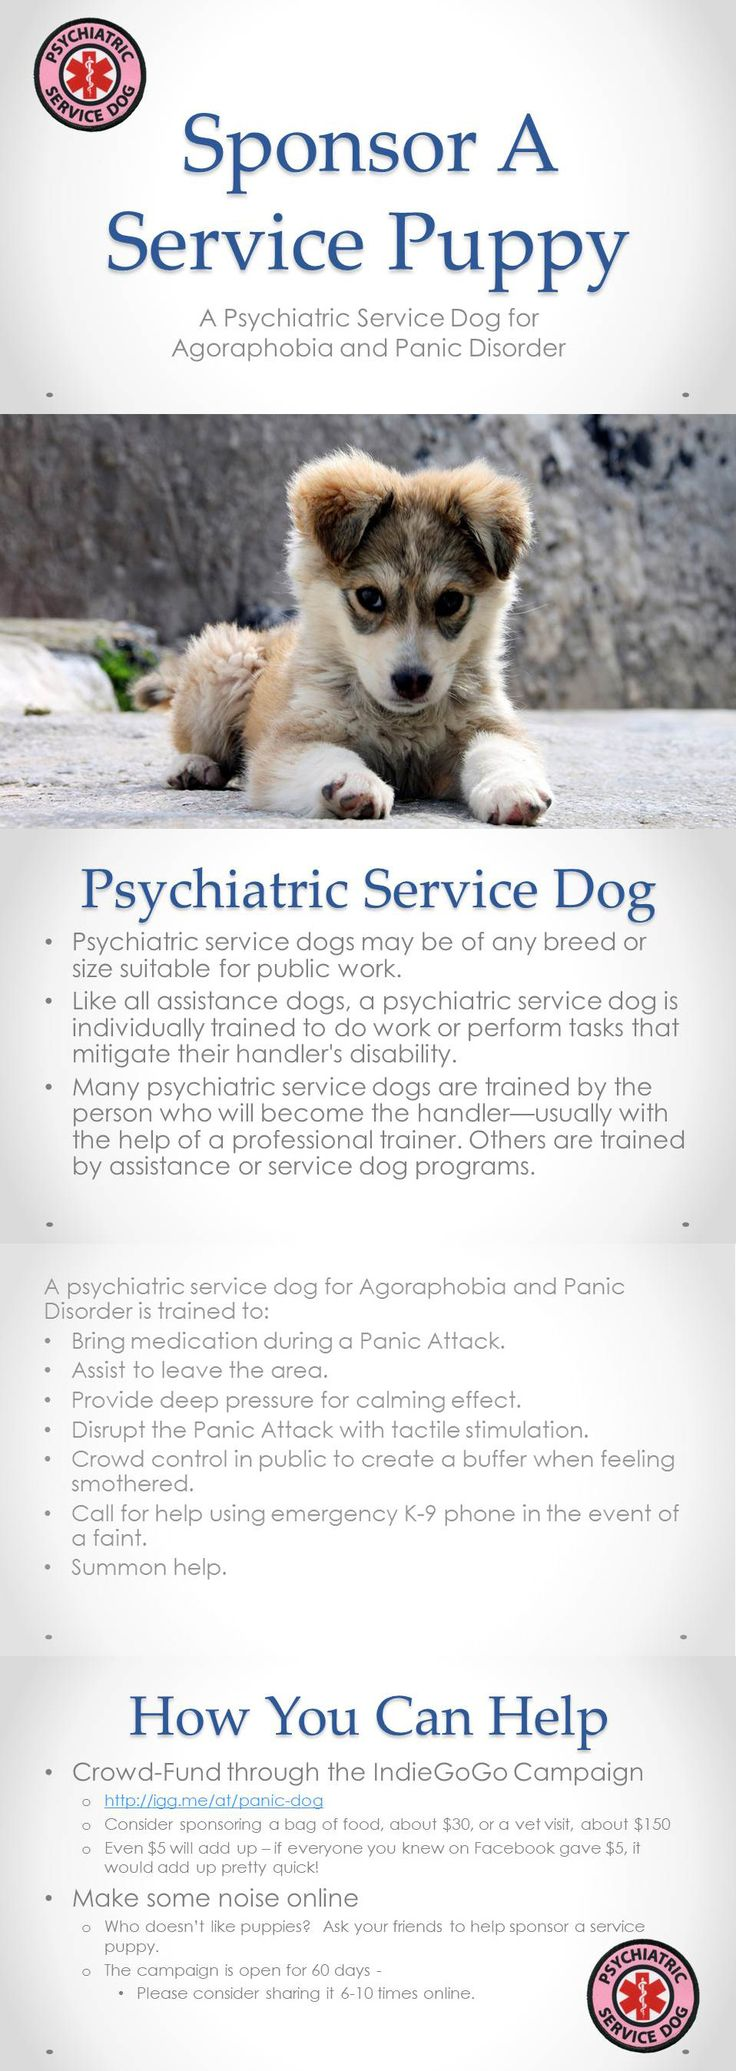 What Disorders Can A Psychiatric Service Dog Help With